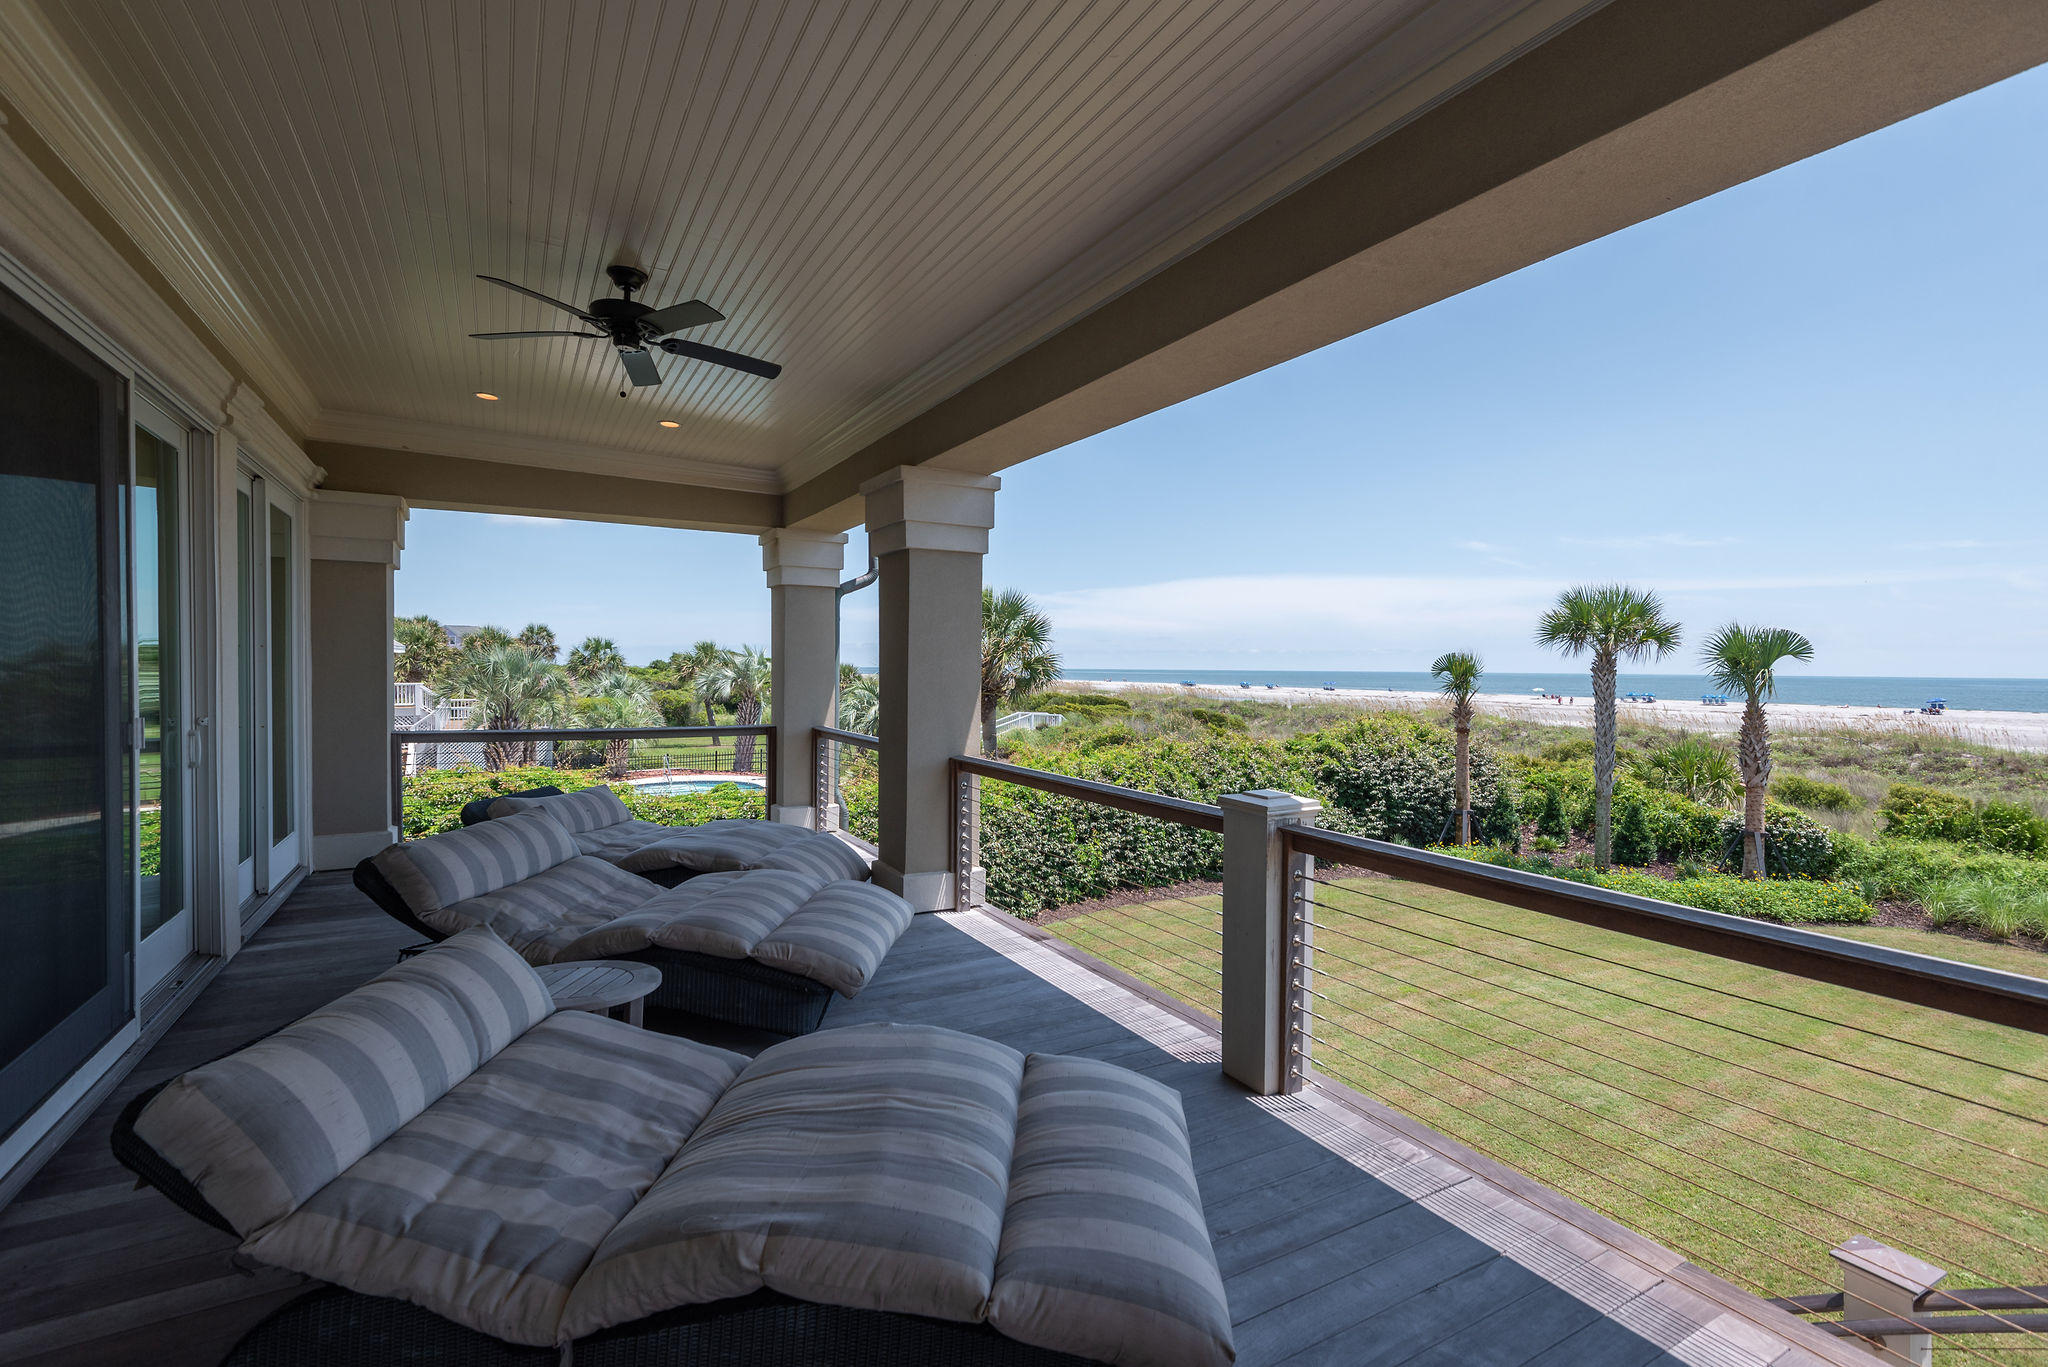 Isle of Palms Homes For Sale - 2 50th, Isle of Palms, SC - 55